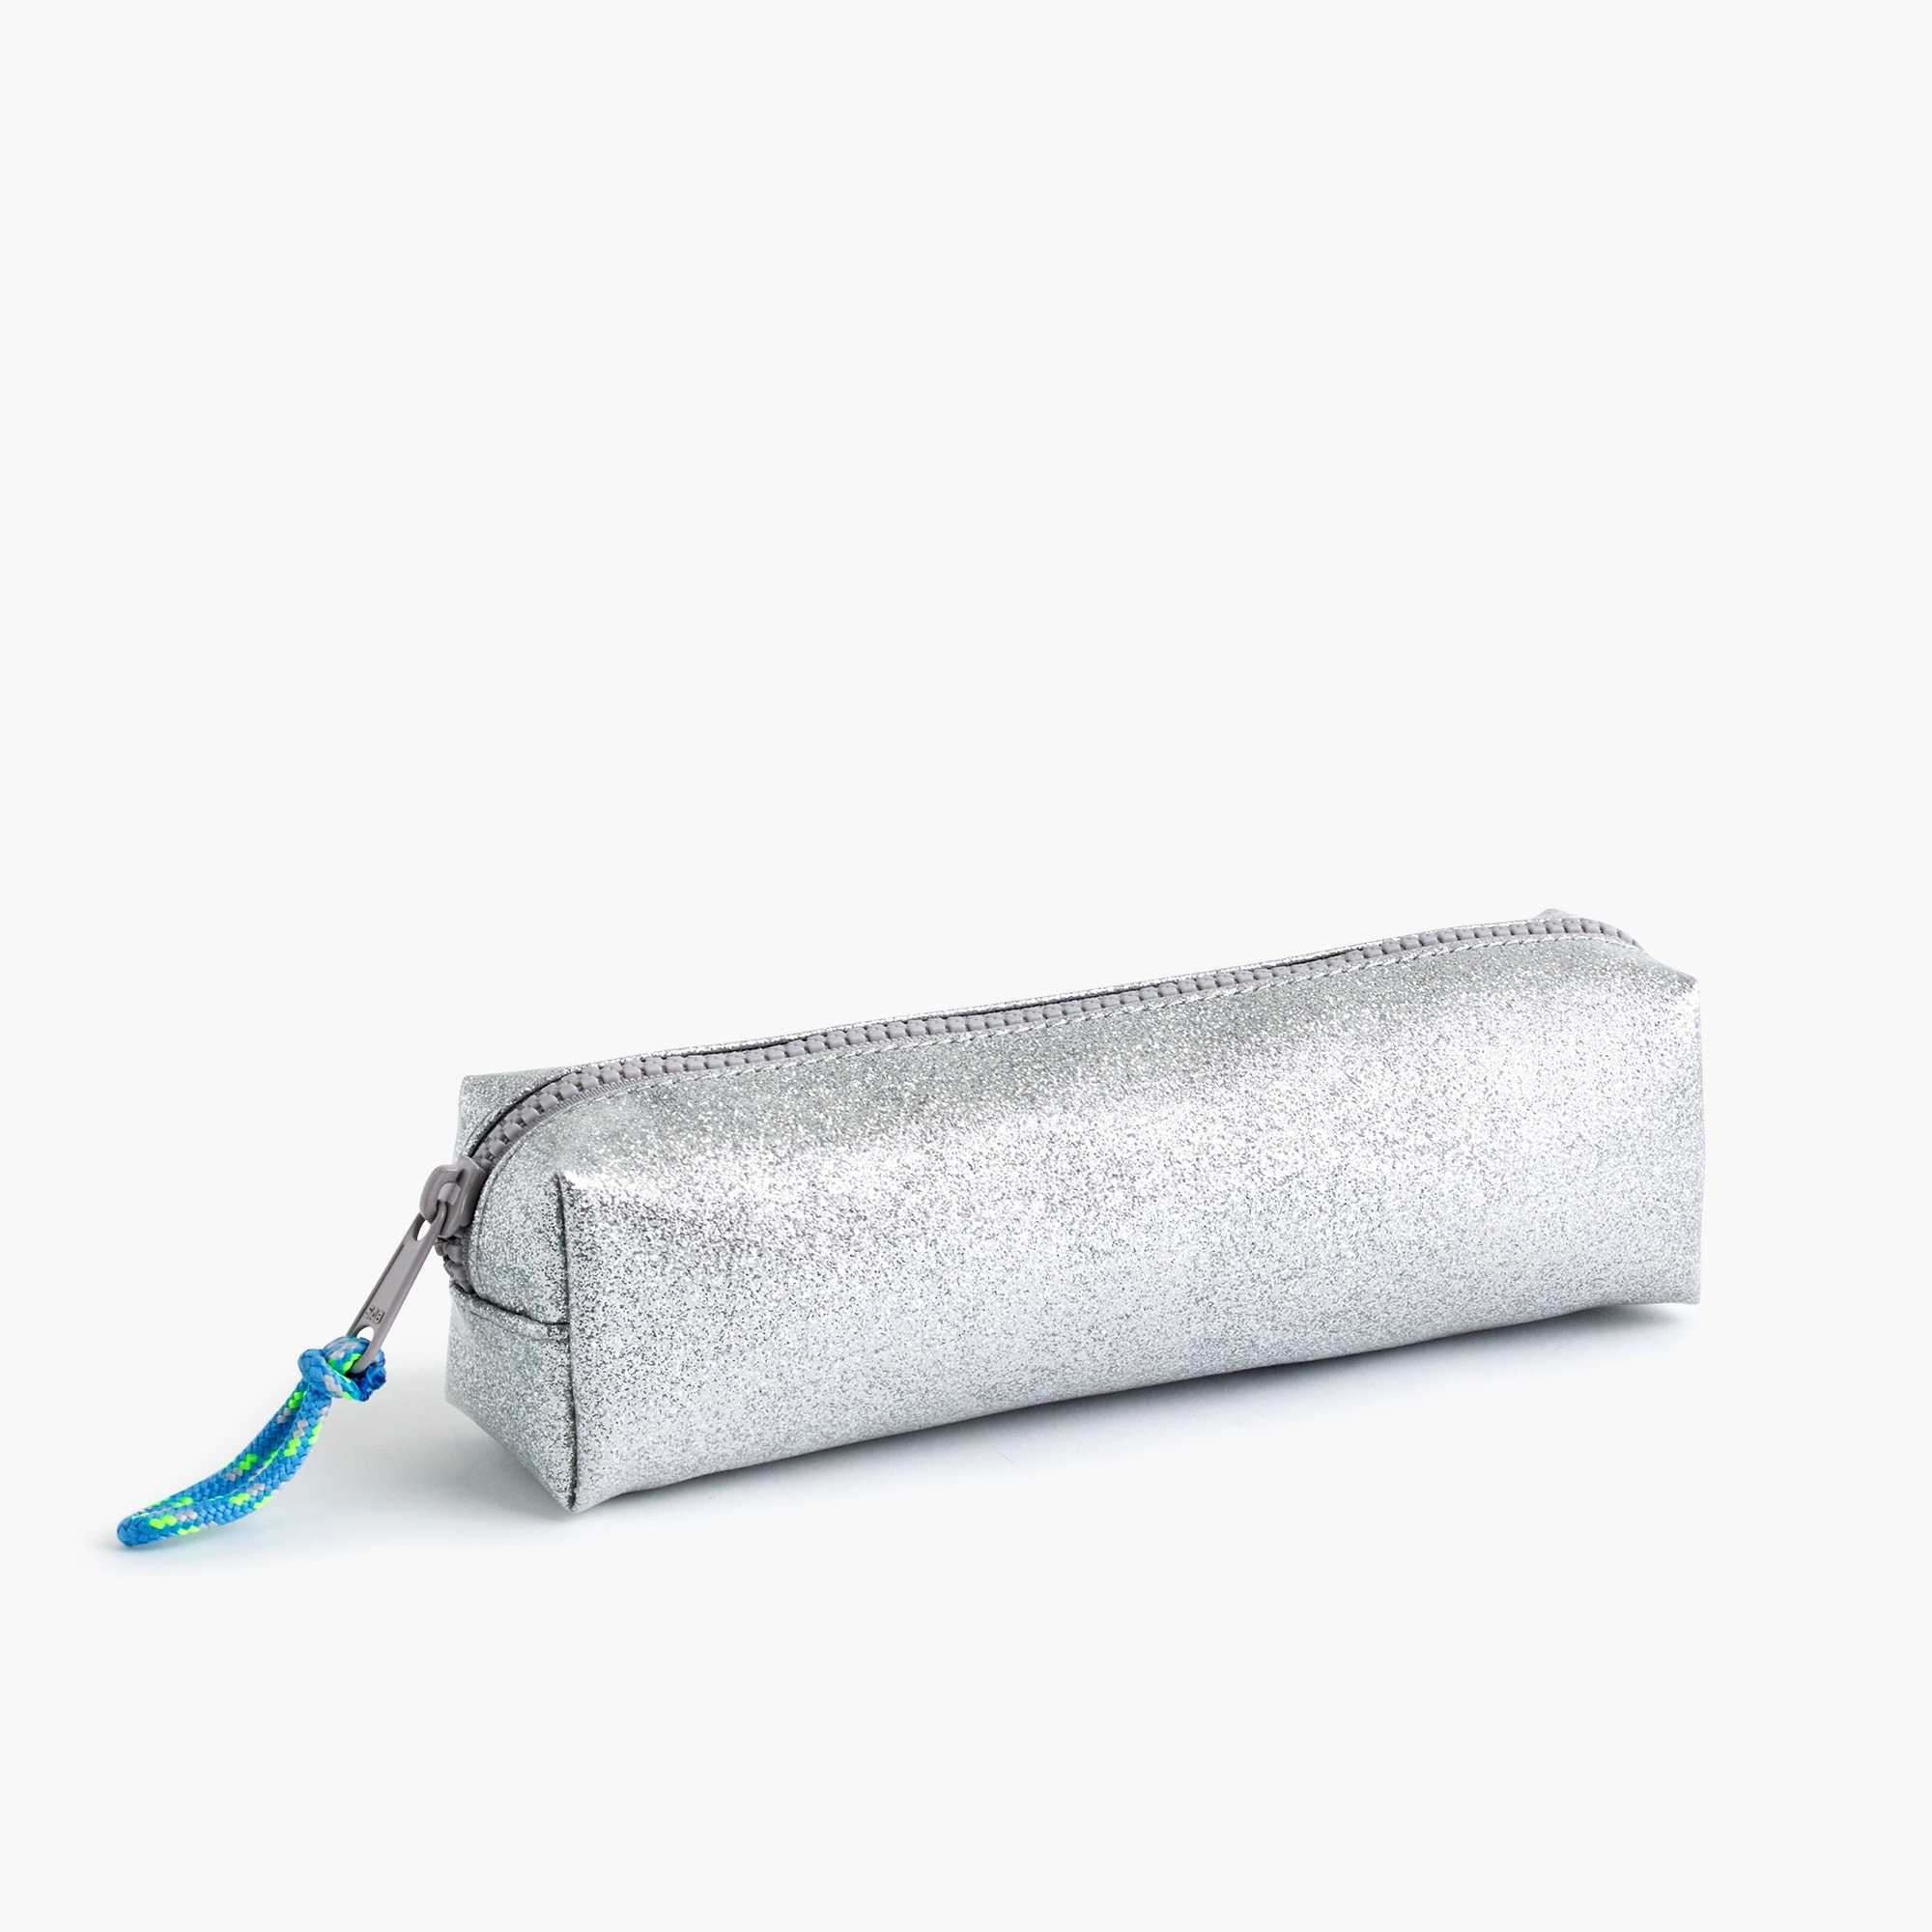 Image 2 for Girls' glitter pencil case